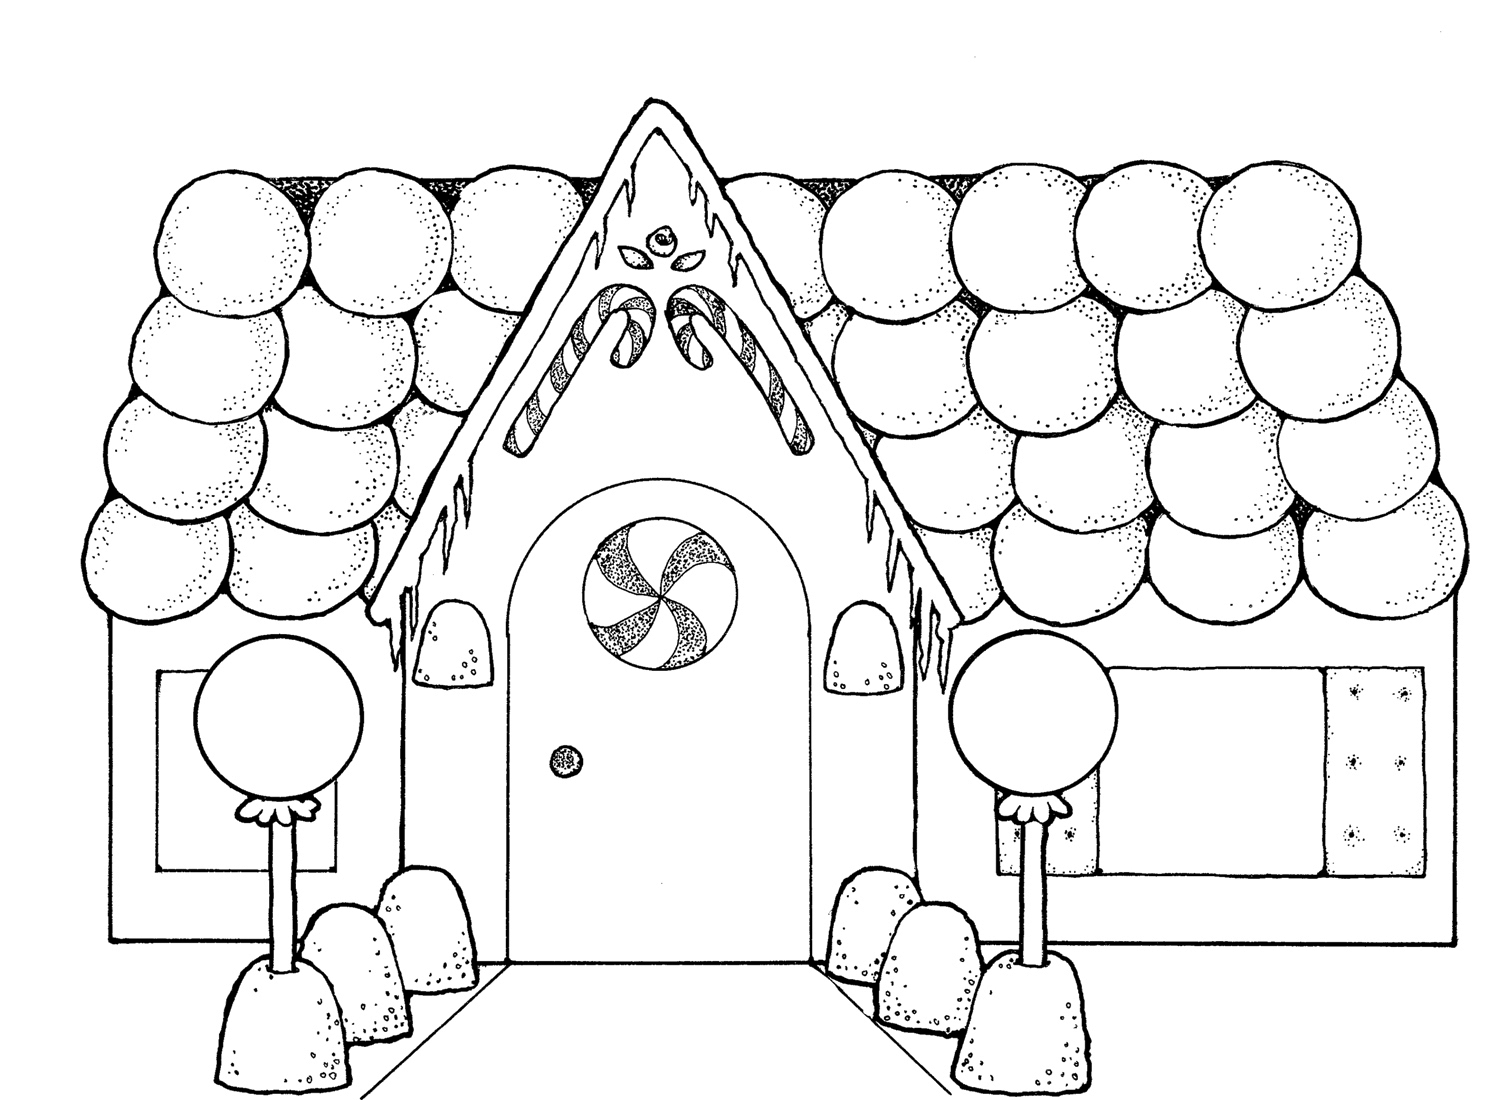 Gingerbread House Coloring Pages To Download And Print For